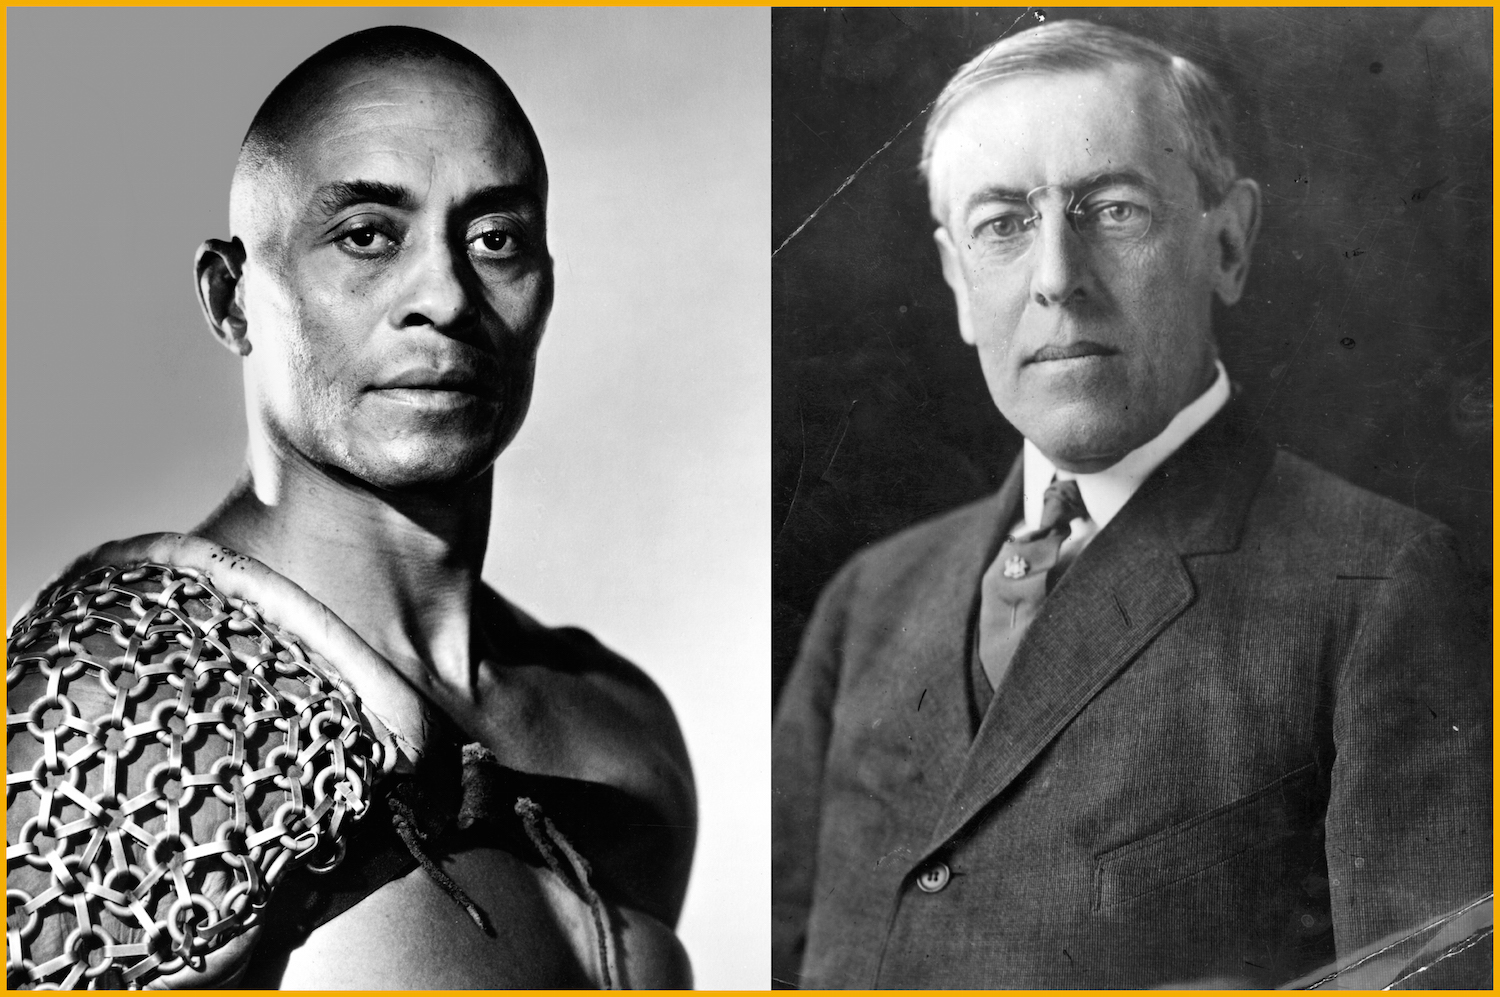 American actor Woody Strode in Stanley Kubrick's film 'Spartacus' (L) and the person after whom he was named: Woodrow Wilson, the 28th President of the United States of America.